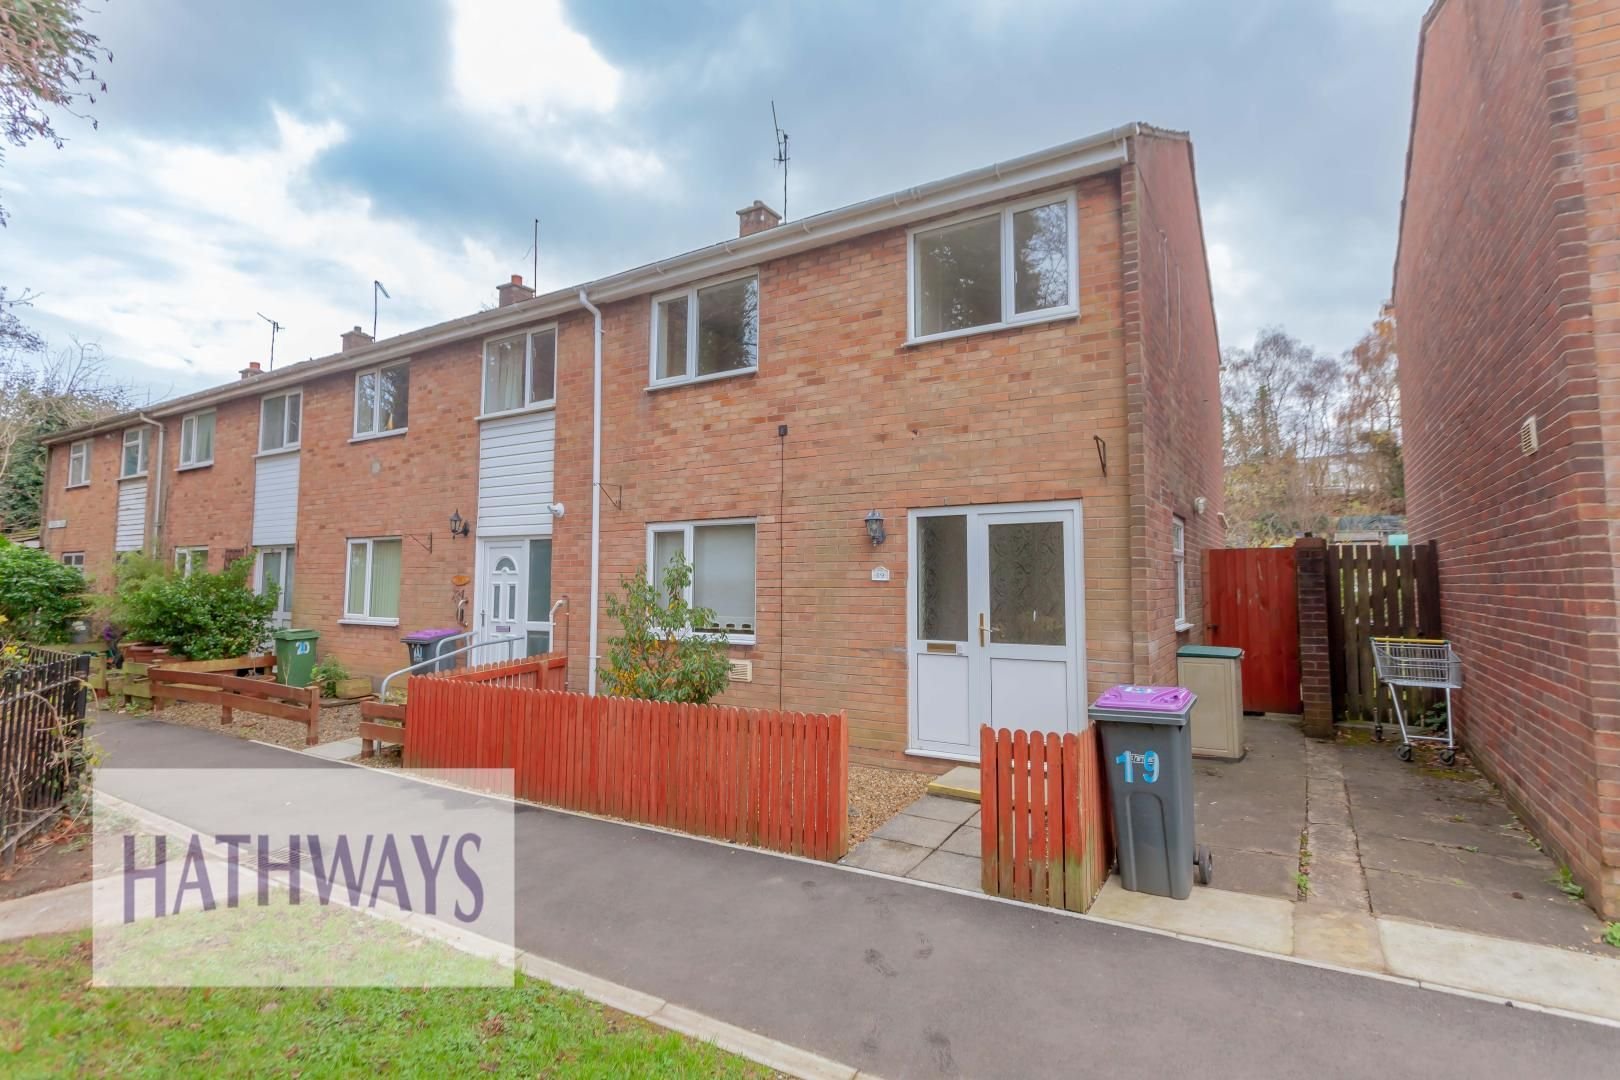 3 bed house for sale in Trellech Close, NP44